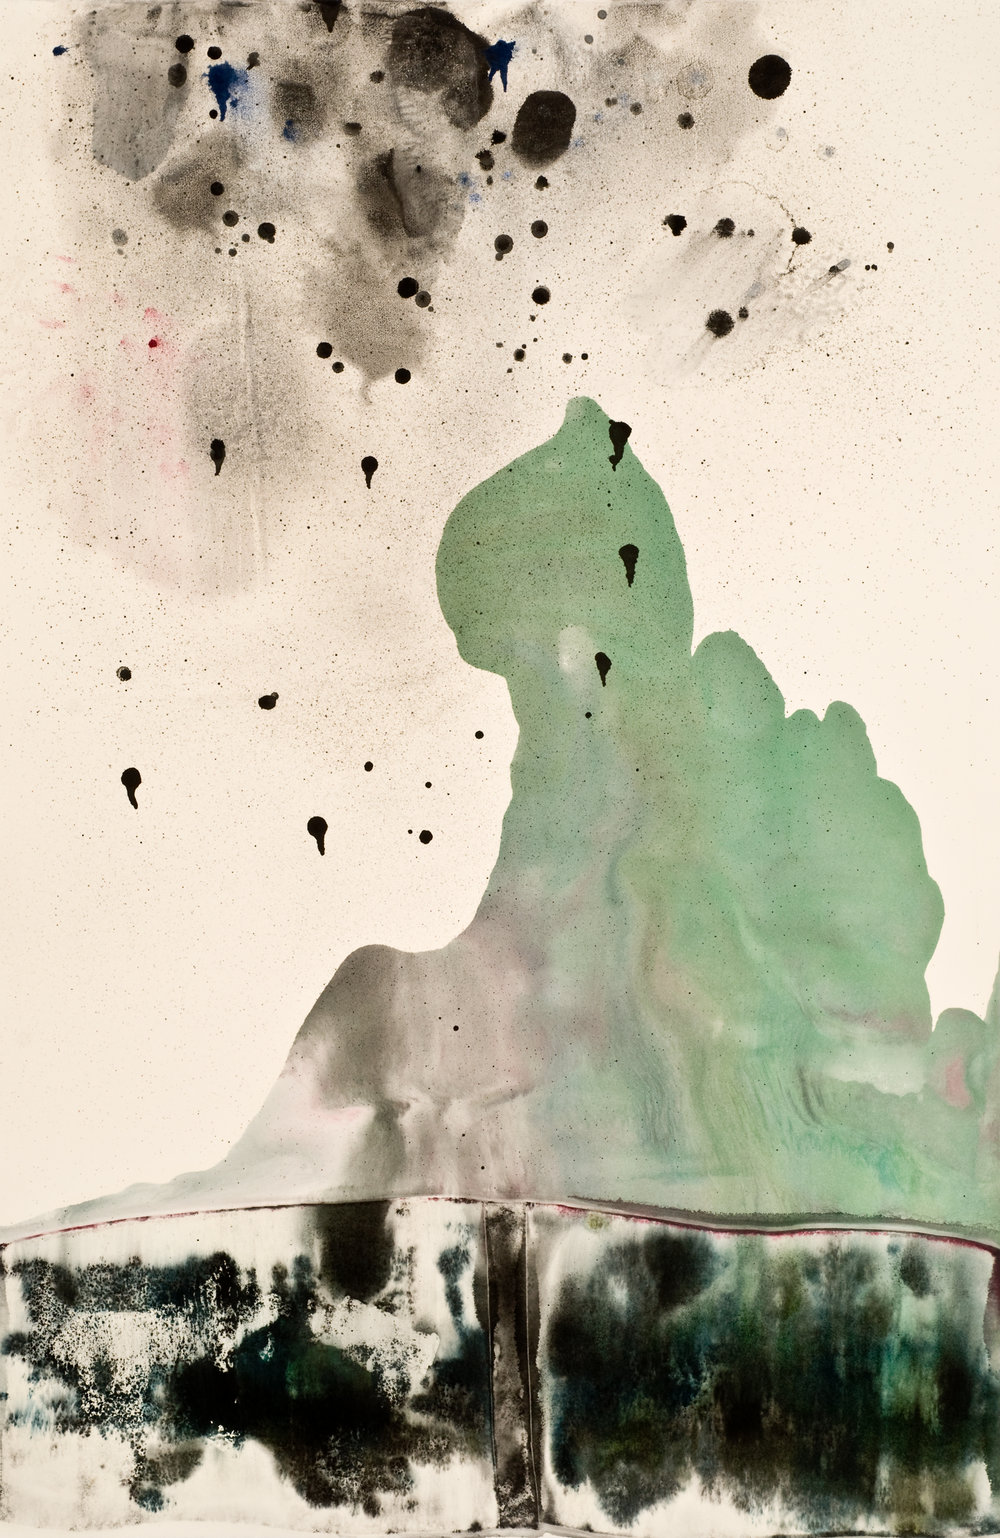 Untitled 5 ,2012  oil on paper monoprint  60 x 40 inches  Wildwood Press